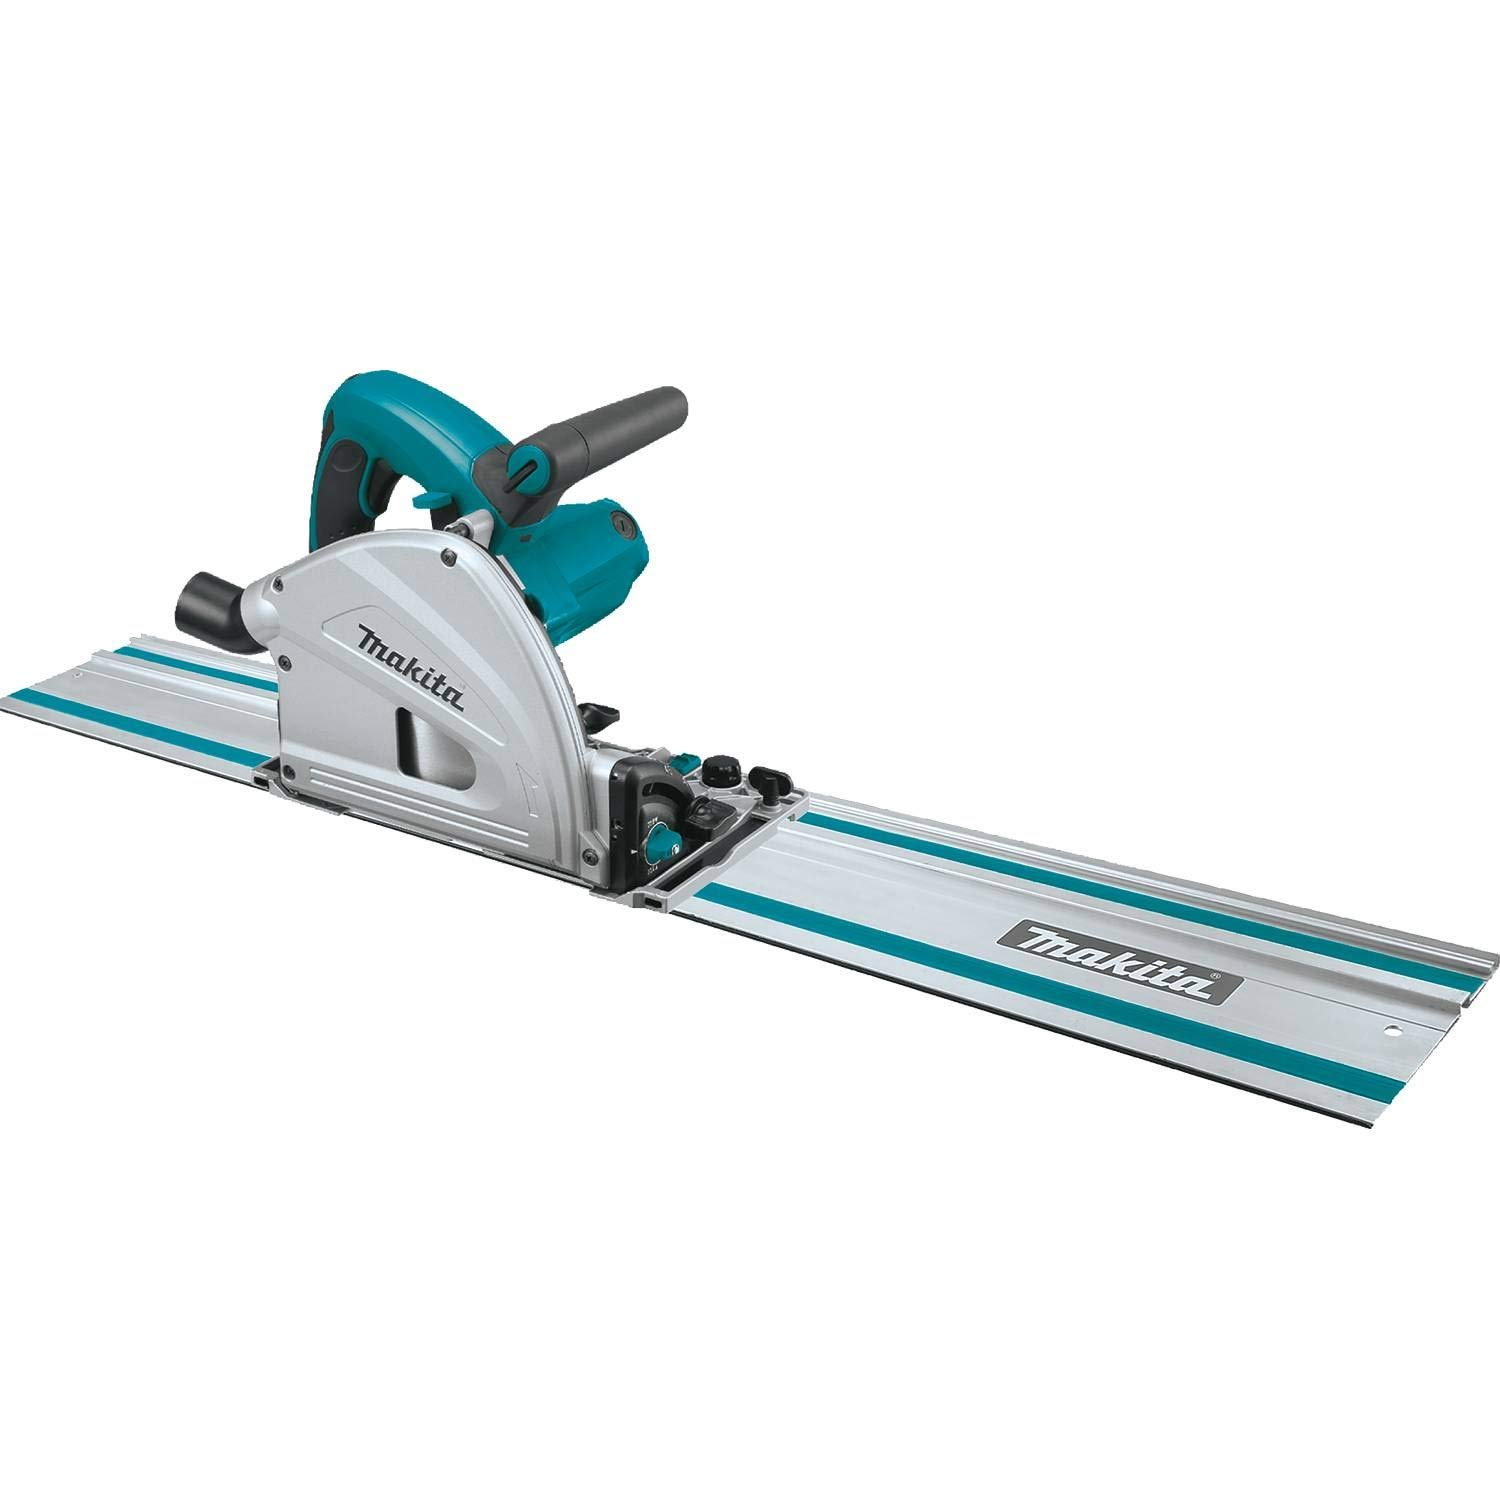 2. Makita SP6000J1 Circular Saw